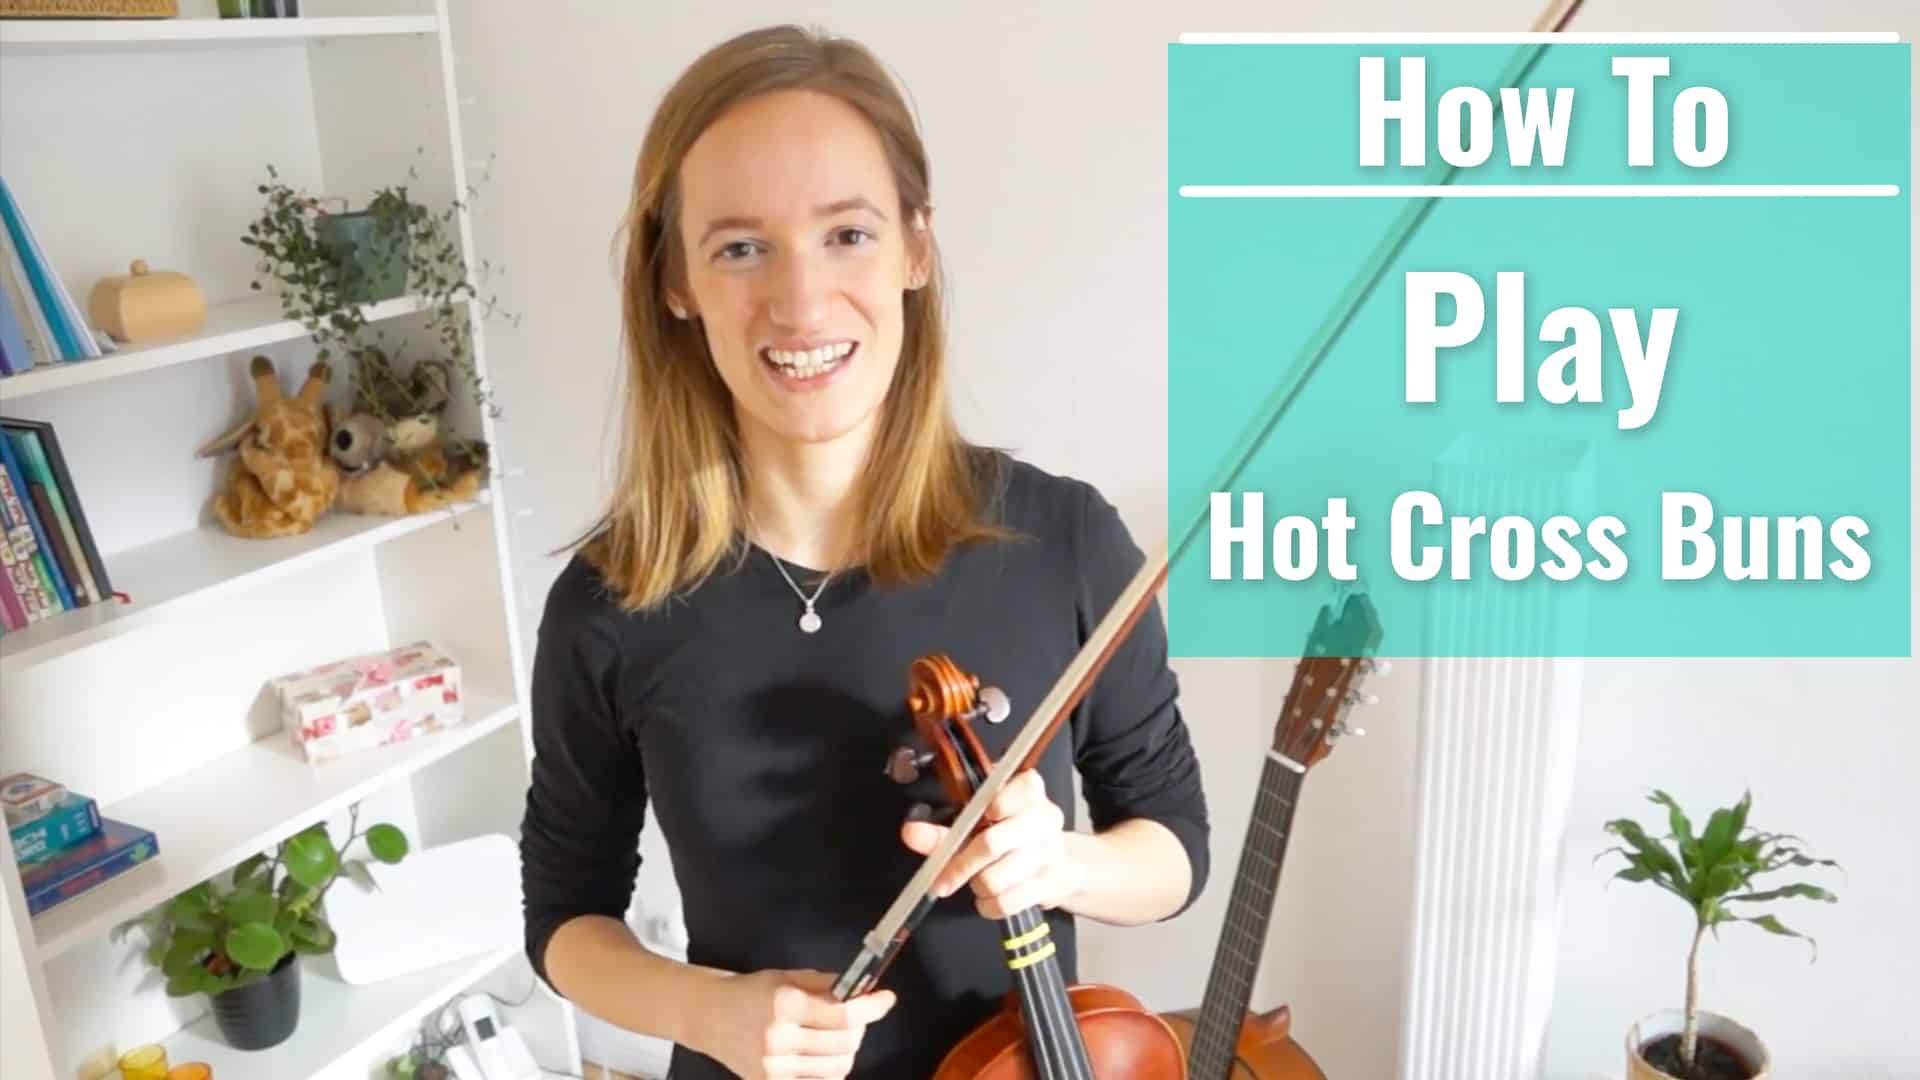 How to play Hot Cross Buns